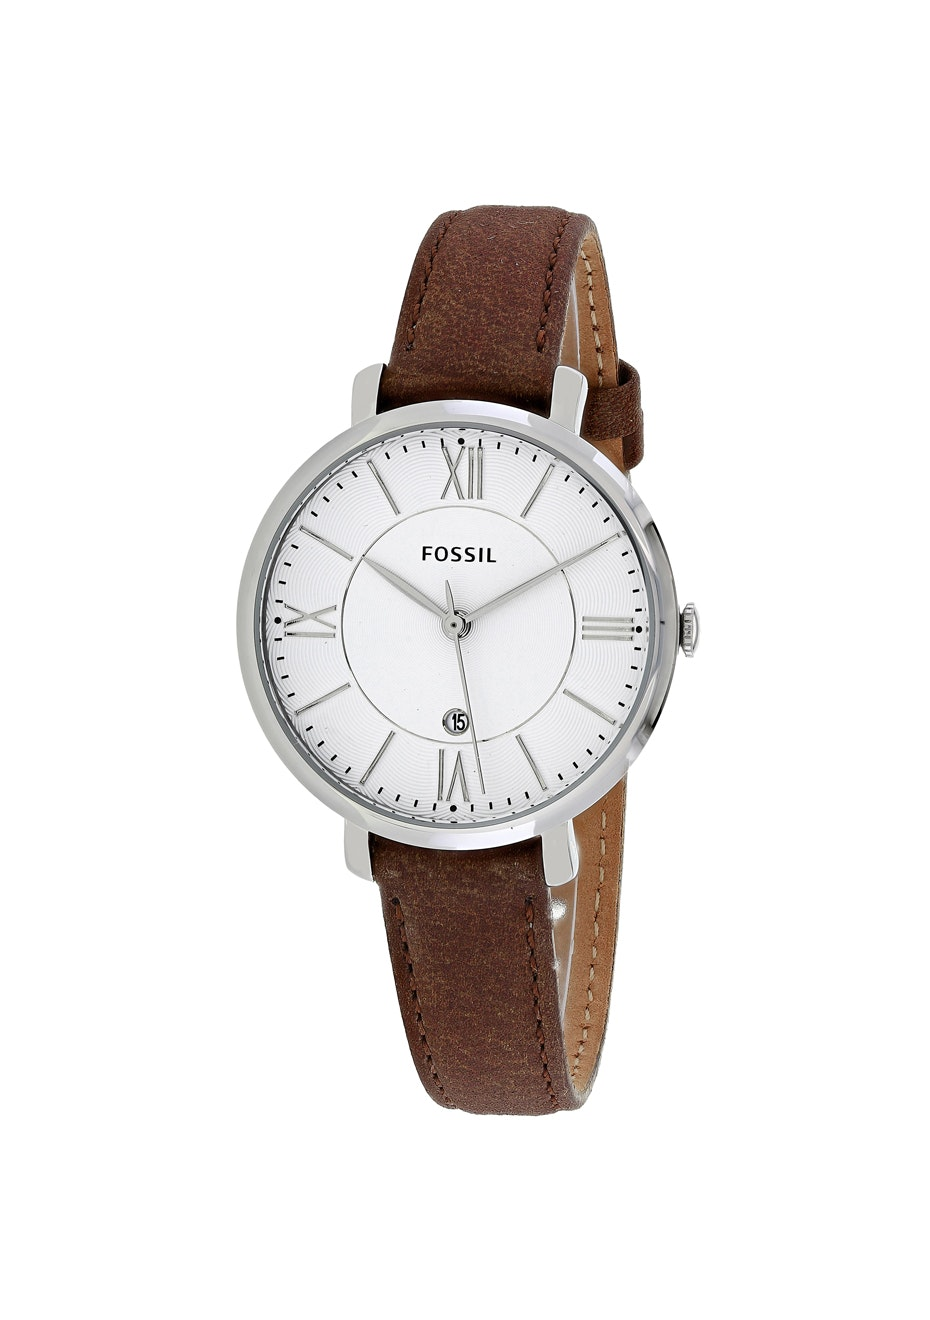 Fossil Women's Jacqueline - White/Brown